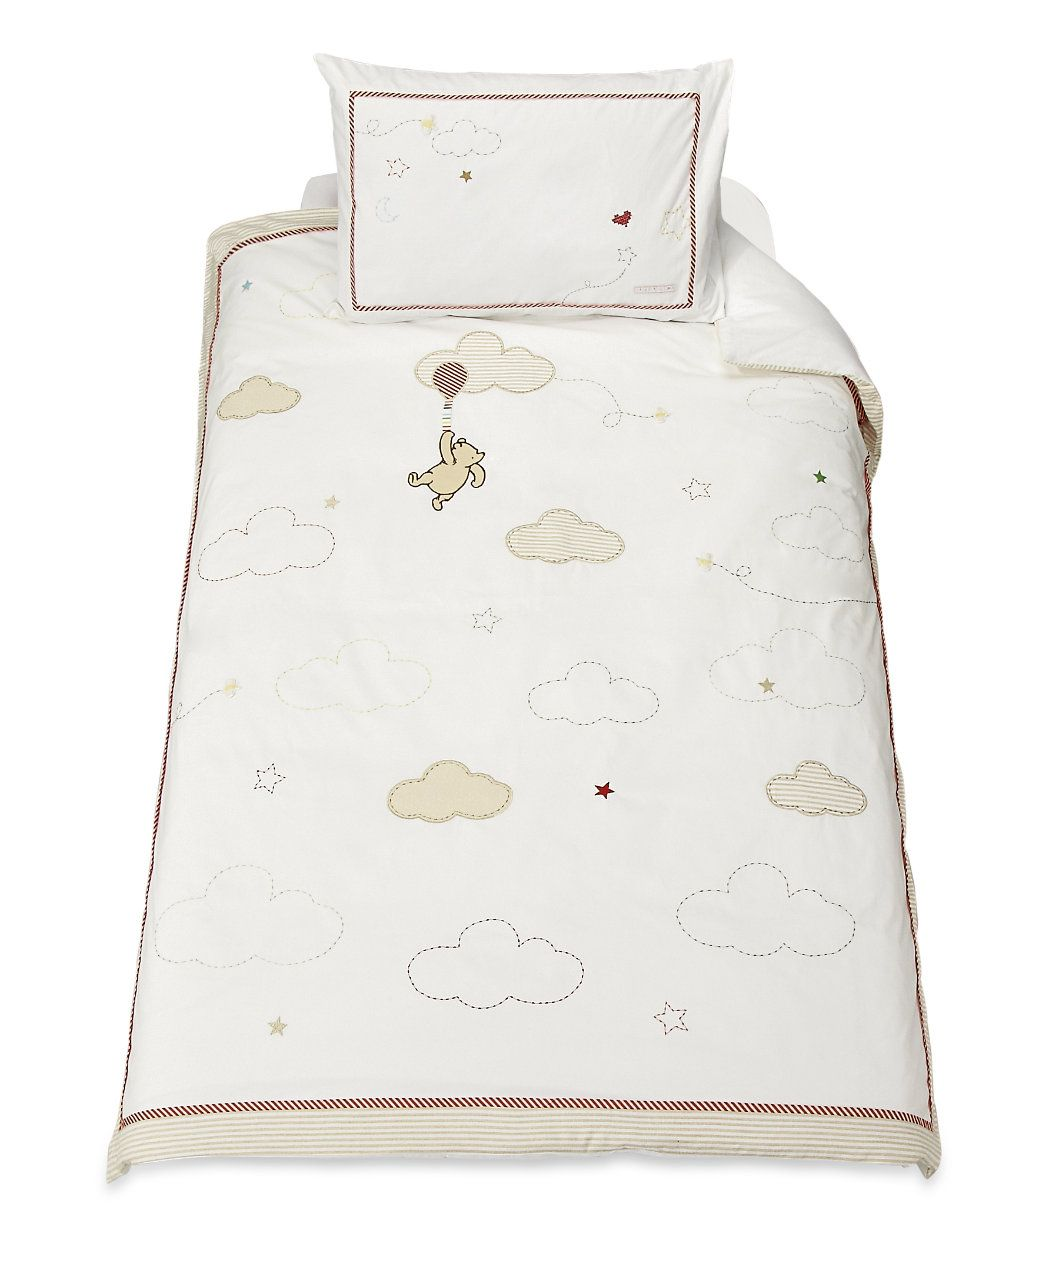 Clic Winnie The Pooh Duvet Cover Set Cot Bed Quilts Coverlets Mothercare